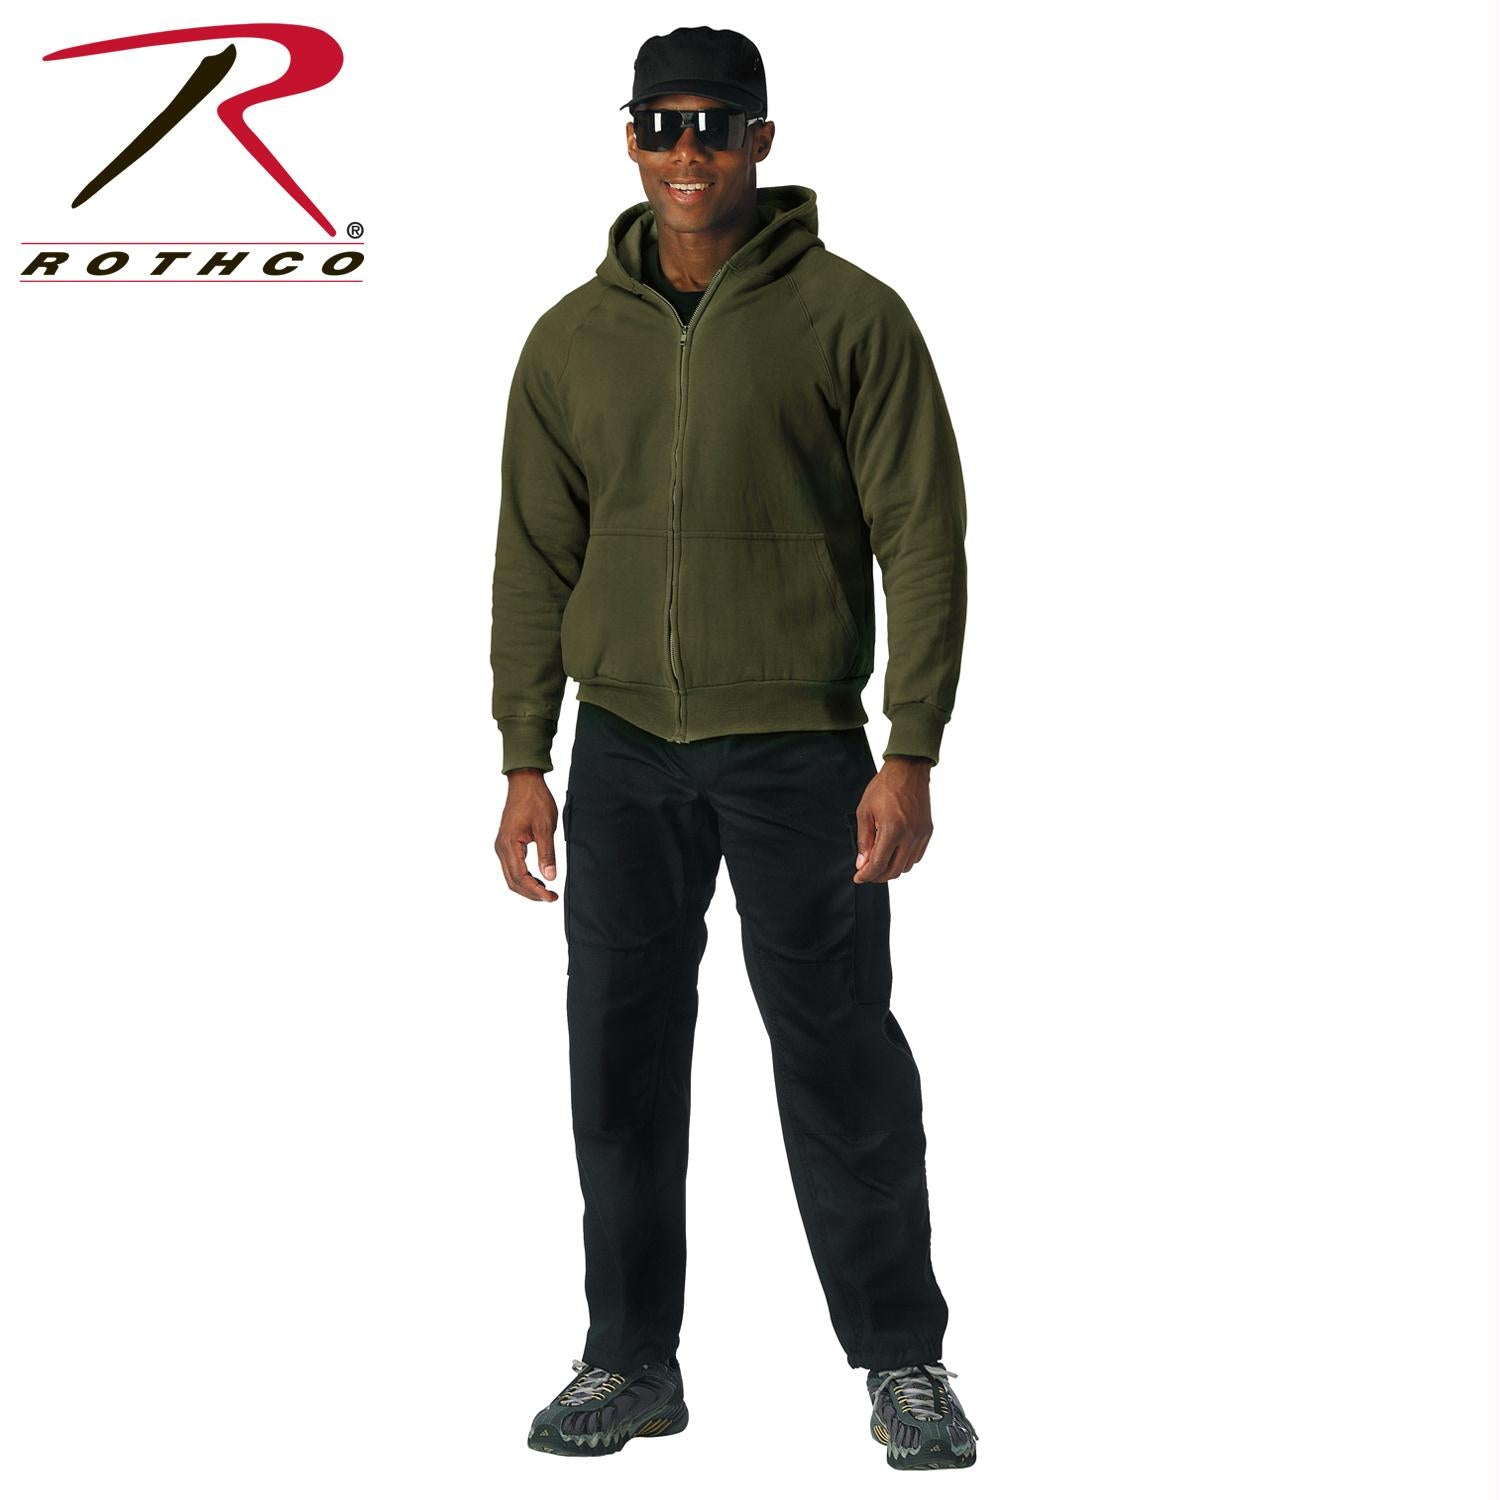 Rothco Thermal Lined Hooded Sweatshirt - Olive Drab / 2XL